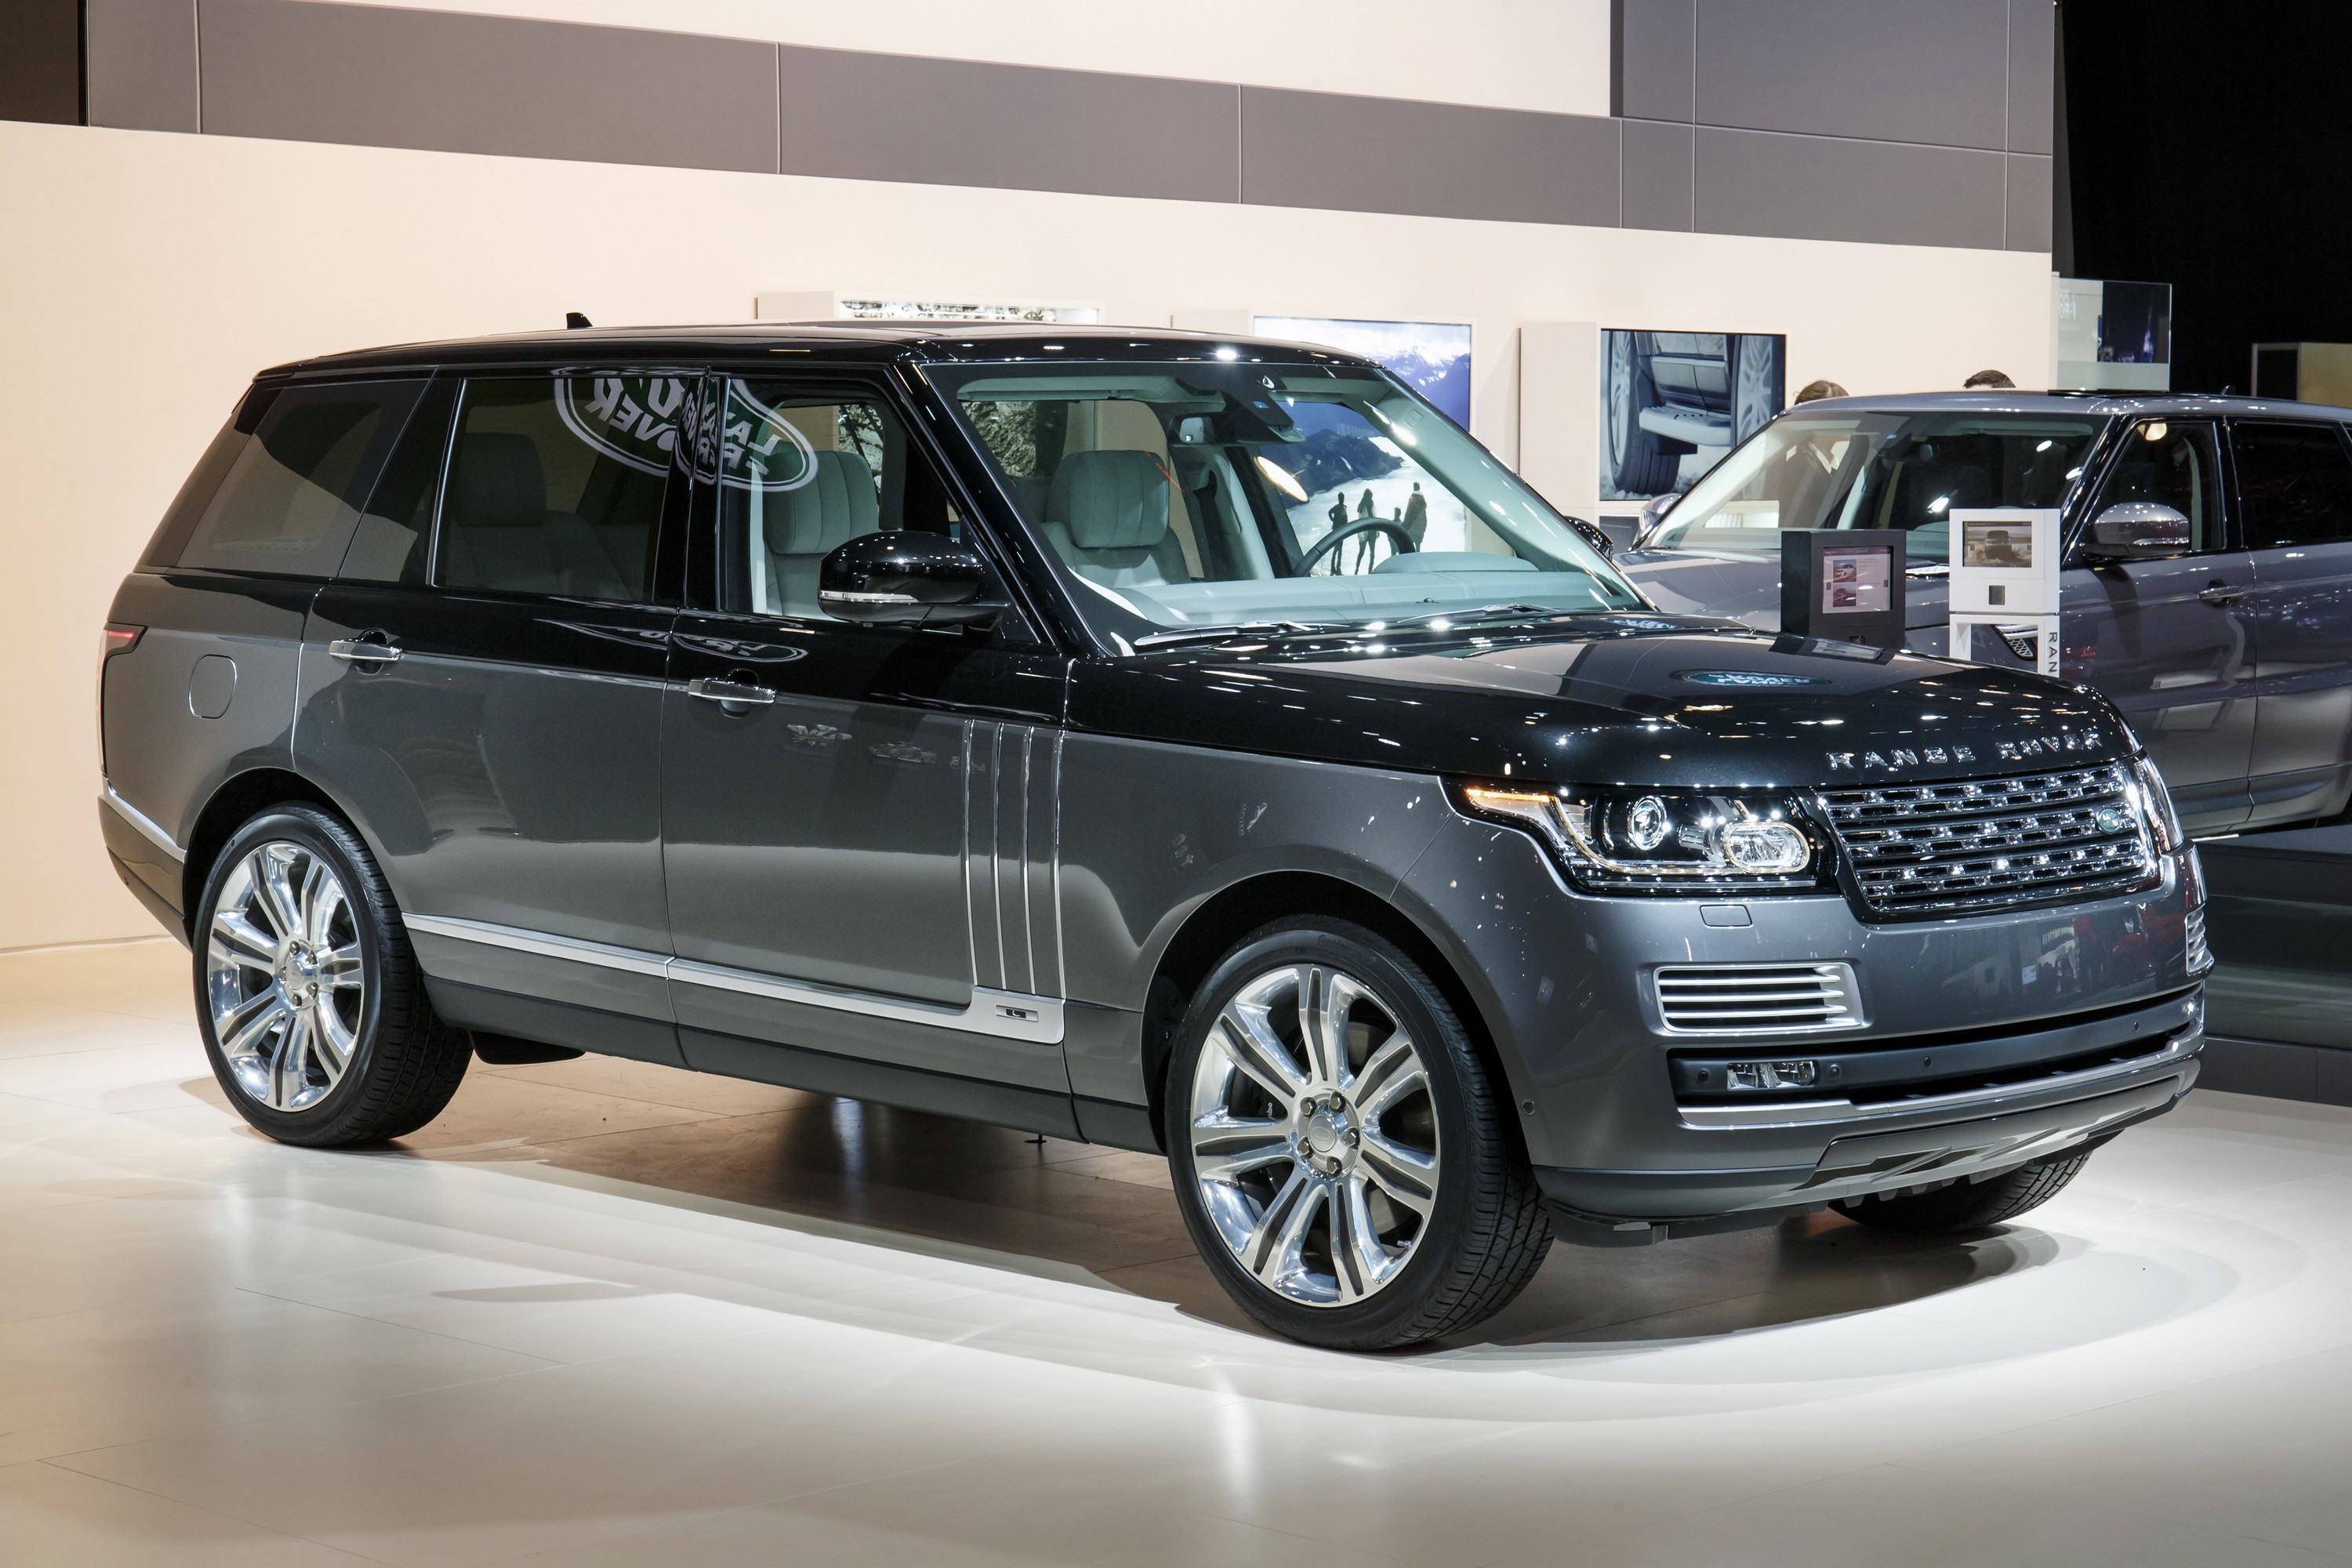 land rover announces prices for new diesel models. Black Bedroom Furniture Sets. Home Design Ideas